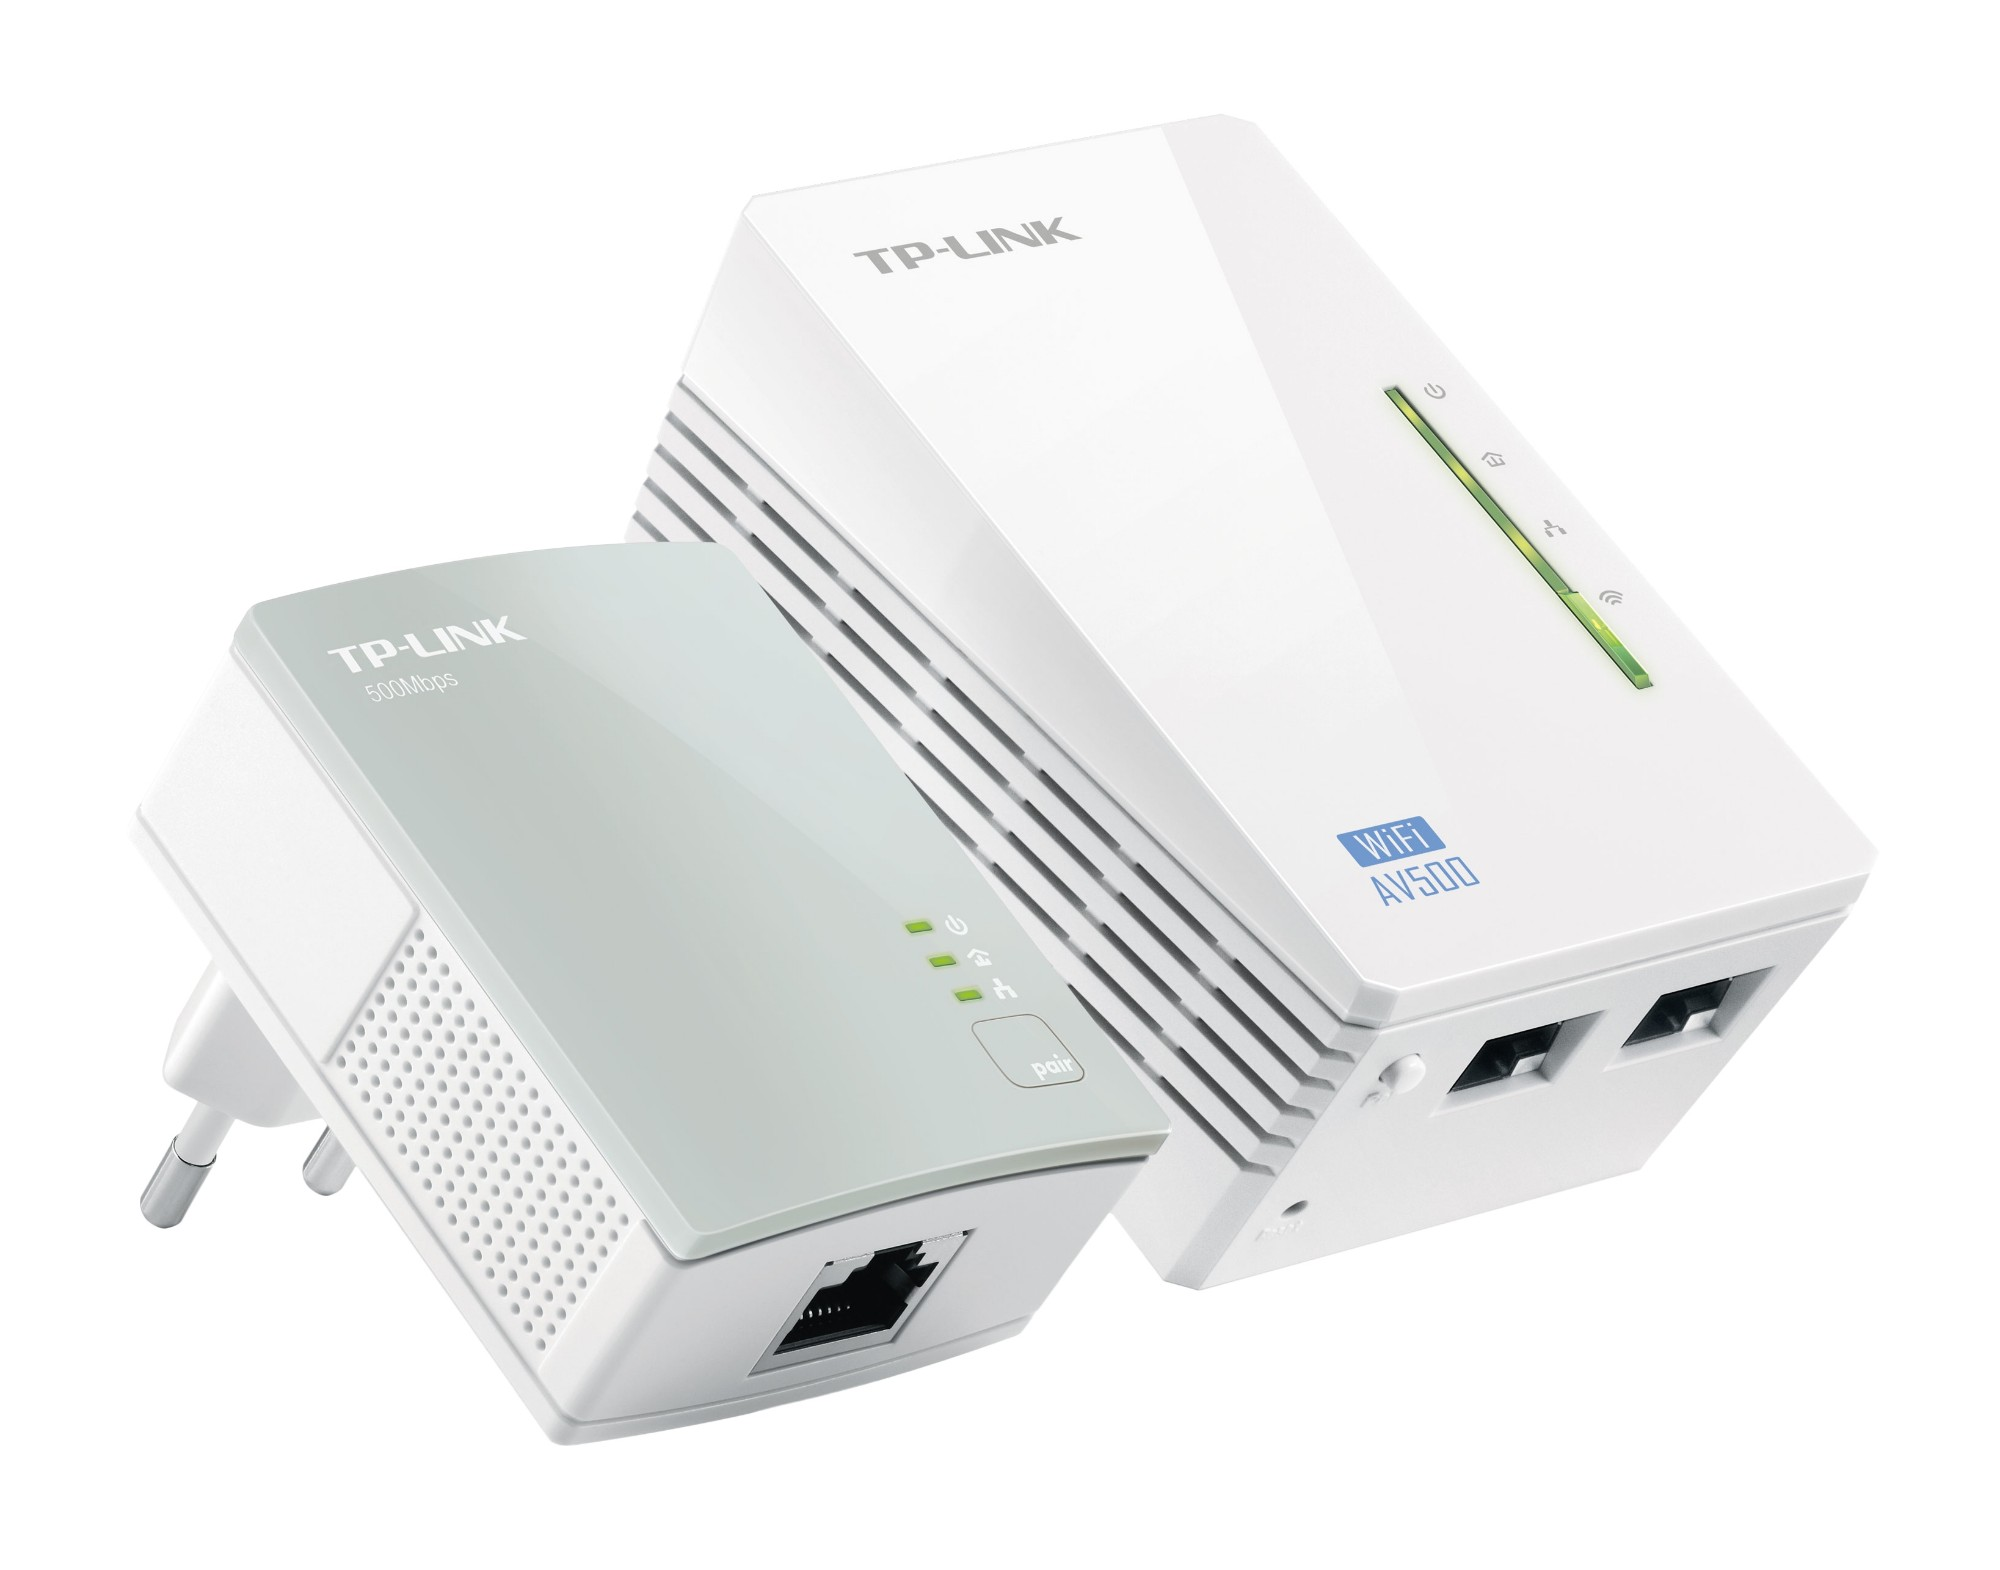 Wireless N Powerline Extender Tl-wpa4220 300mbps Kit Incl Tl-wpa4220 And Tl-pa4010